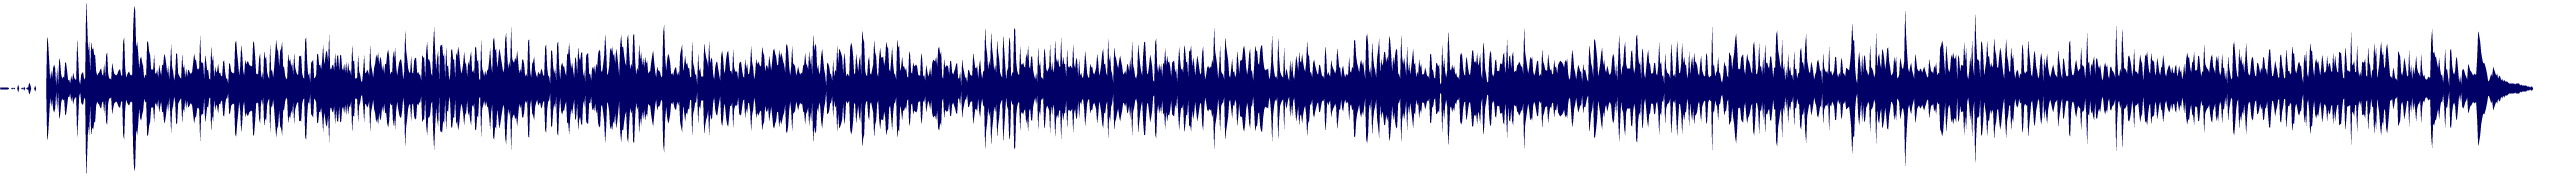 waveform of track #66182